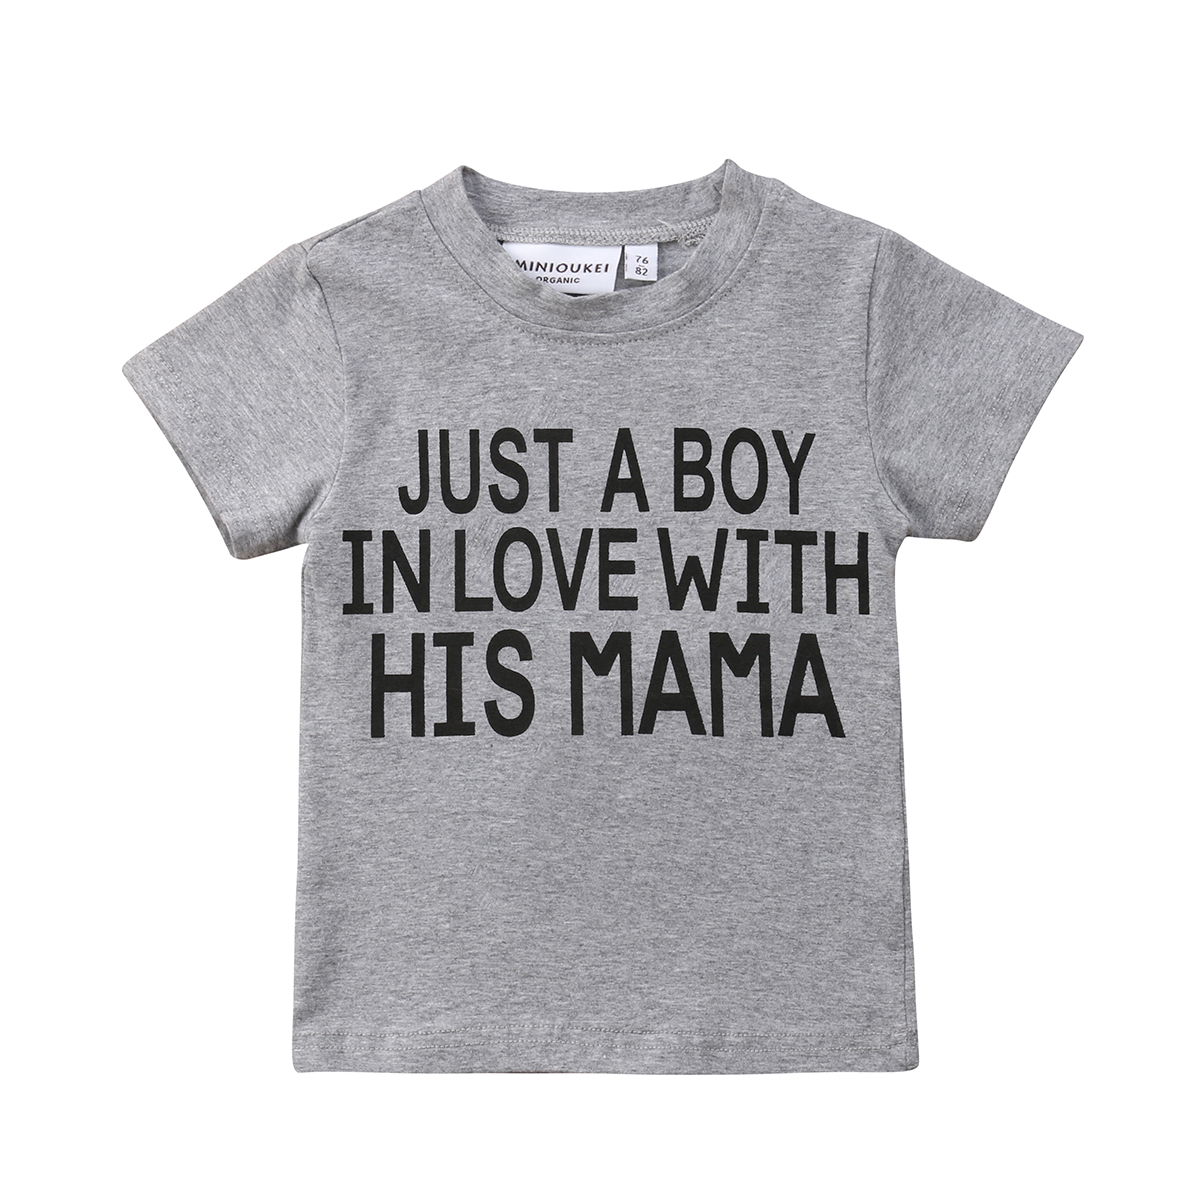 New Infant Kids Baby Girl Boy Tops T-shirt Blouse Tee Clothes Age 1 2 3 4 5 6 Y